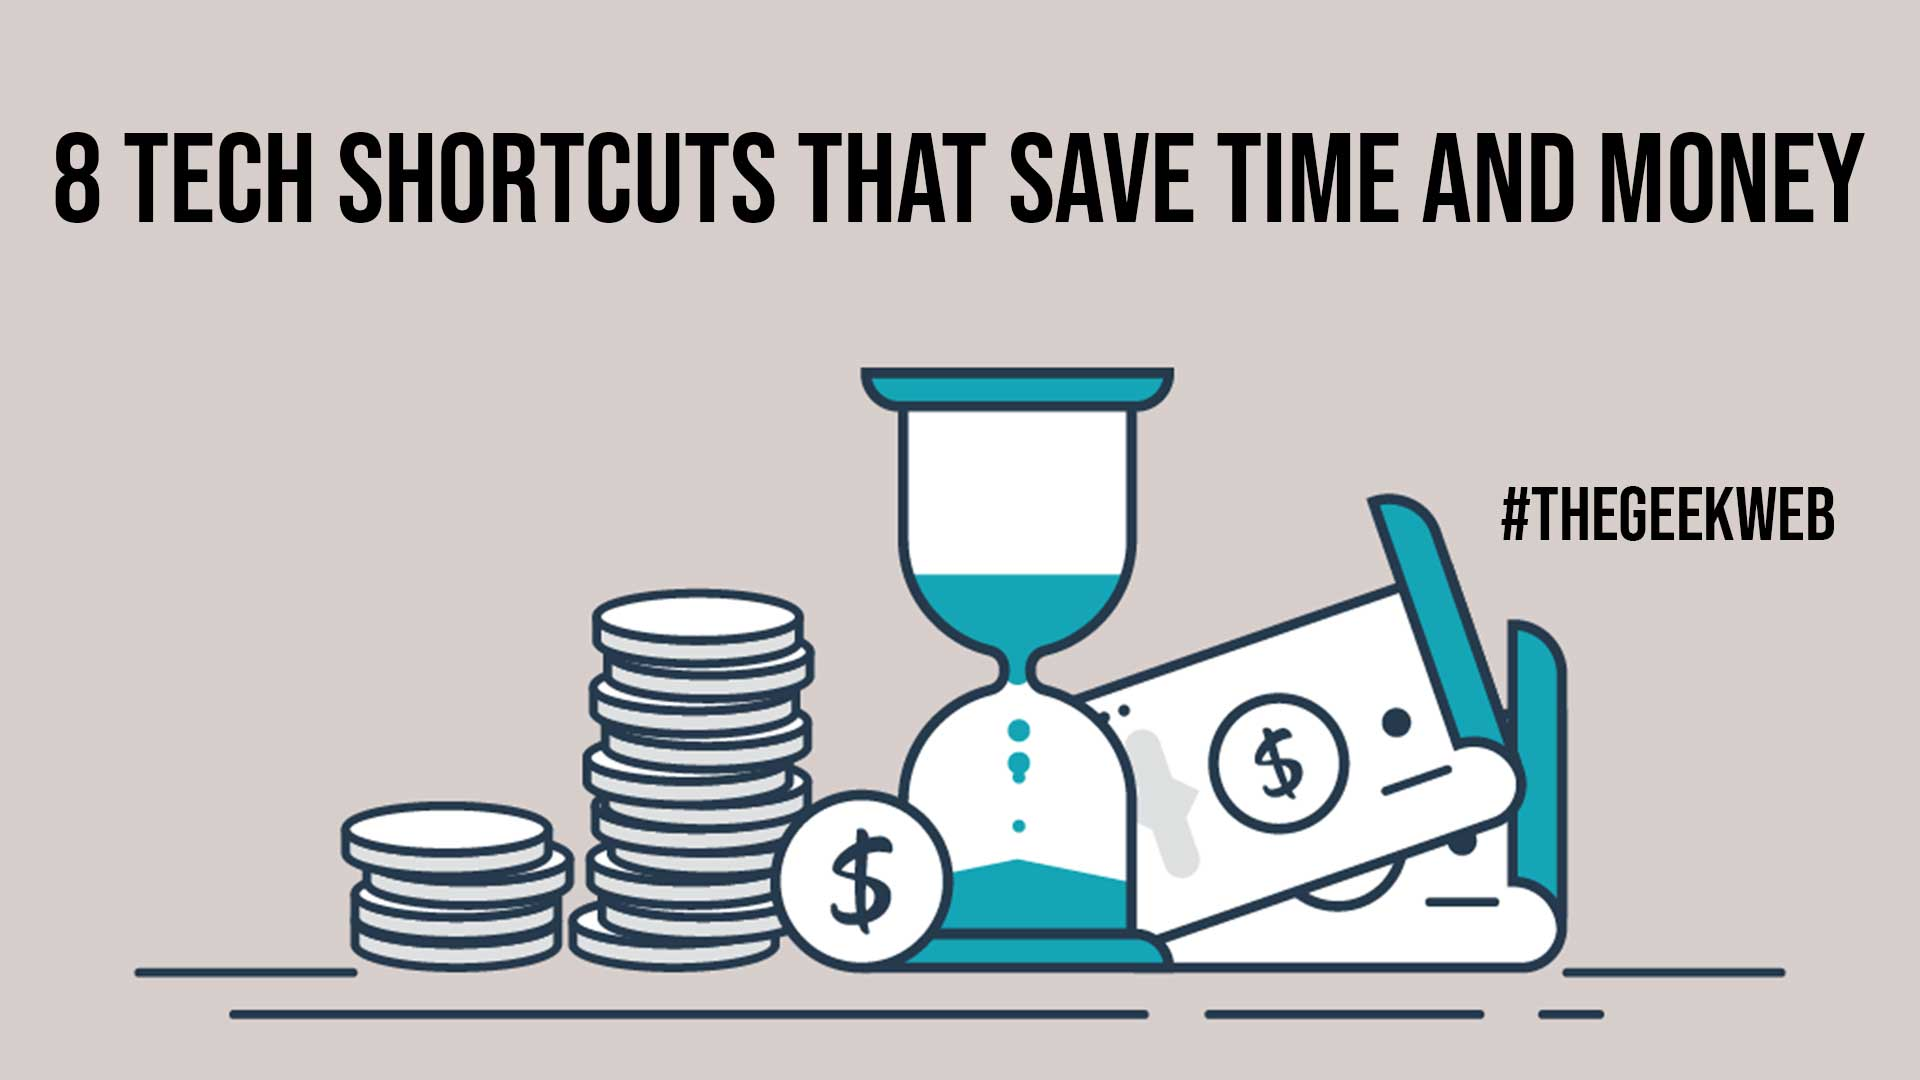 8 Tech Shortcuts That Save Time and Money